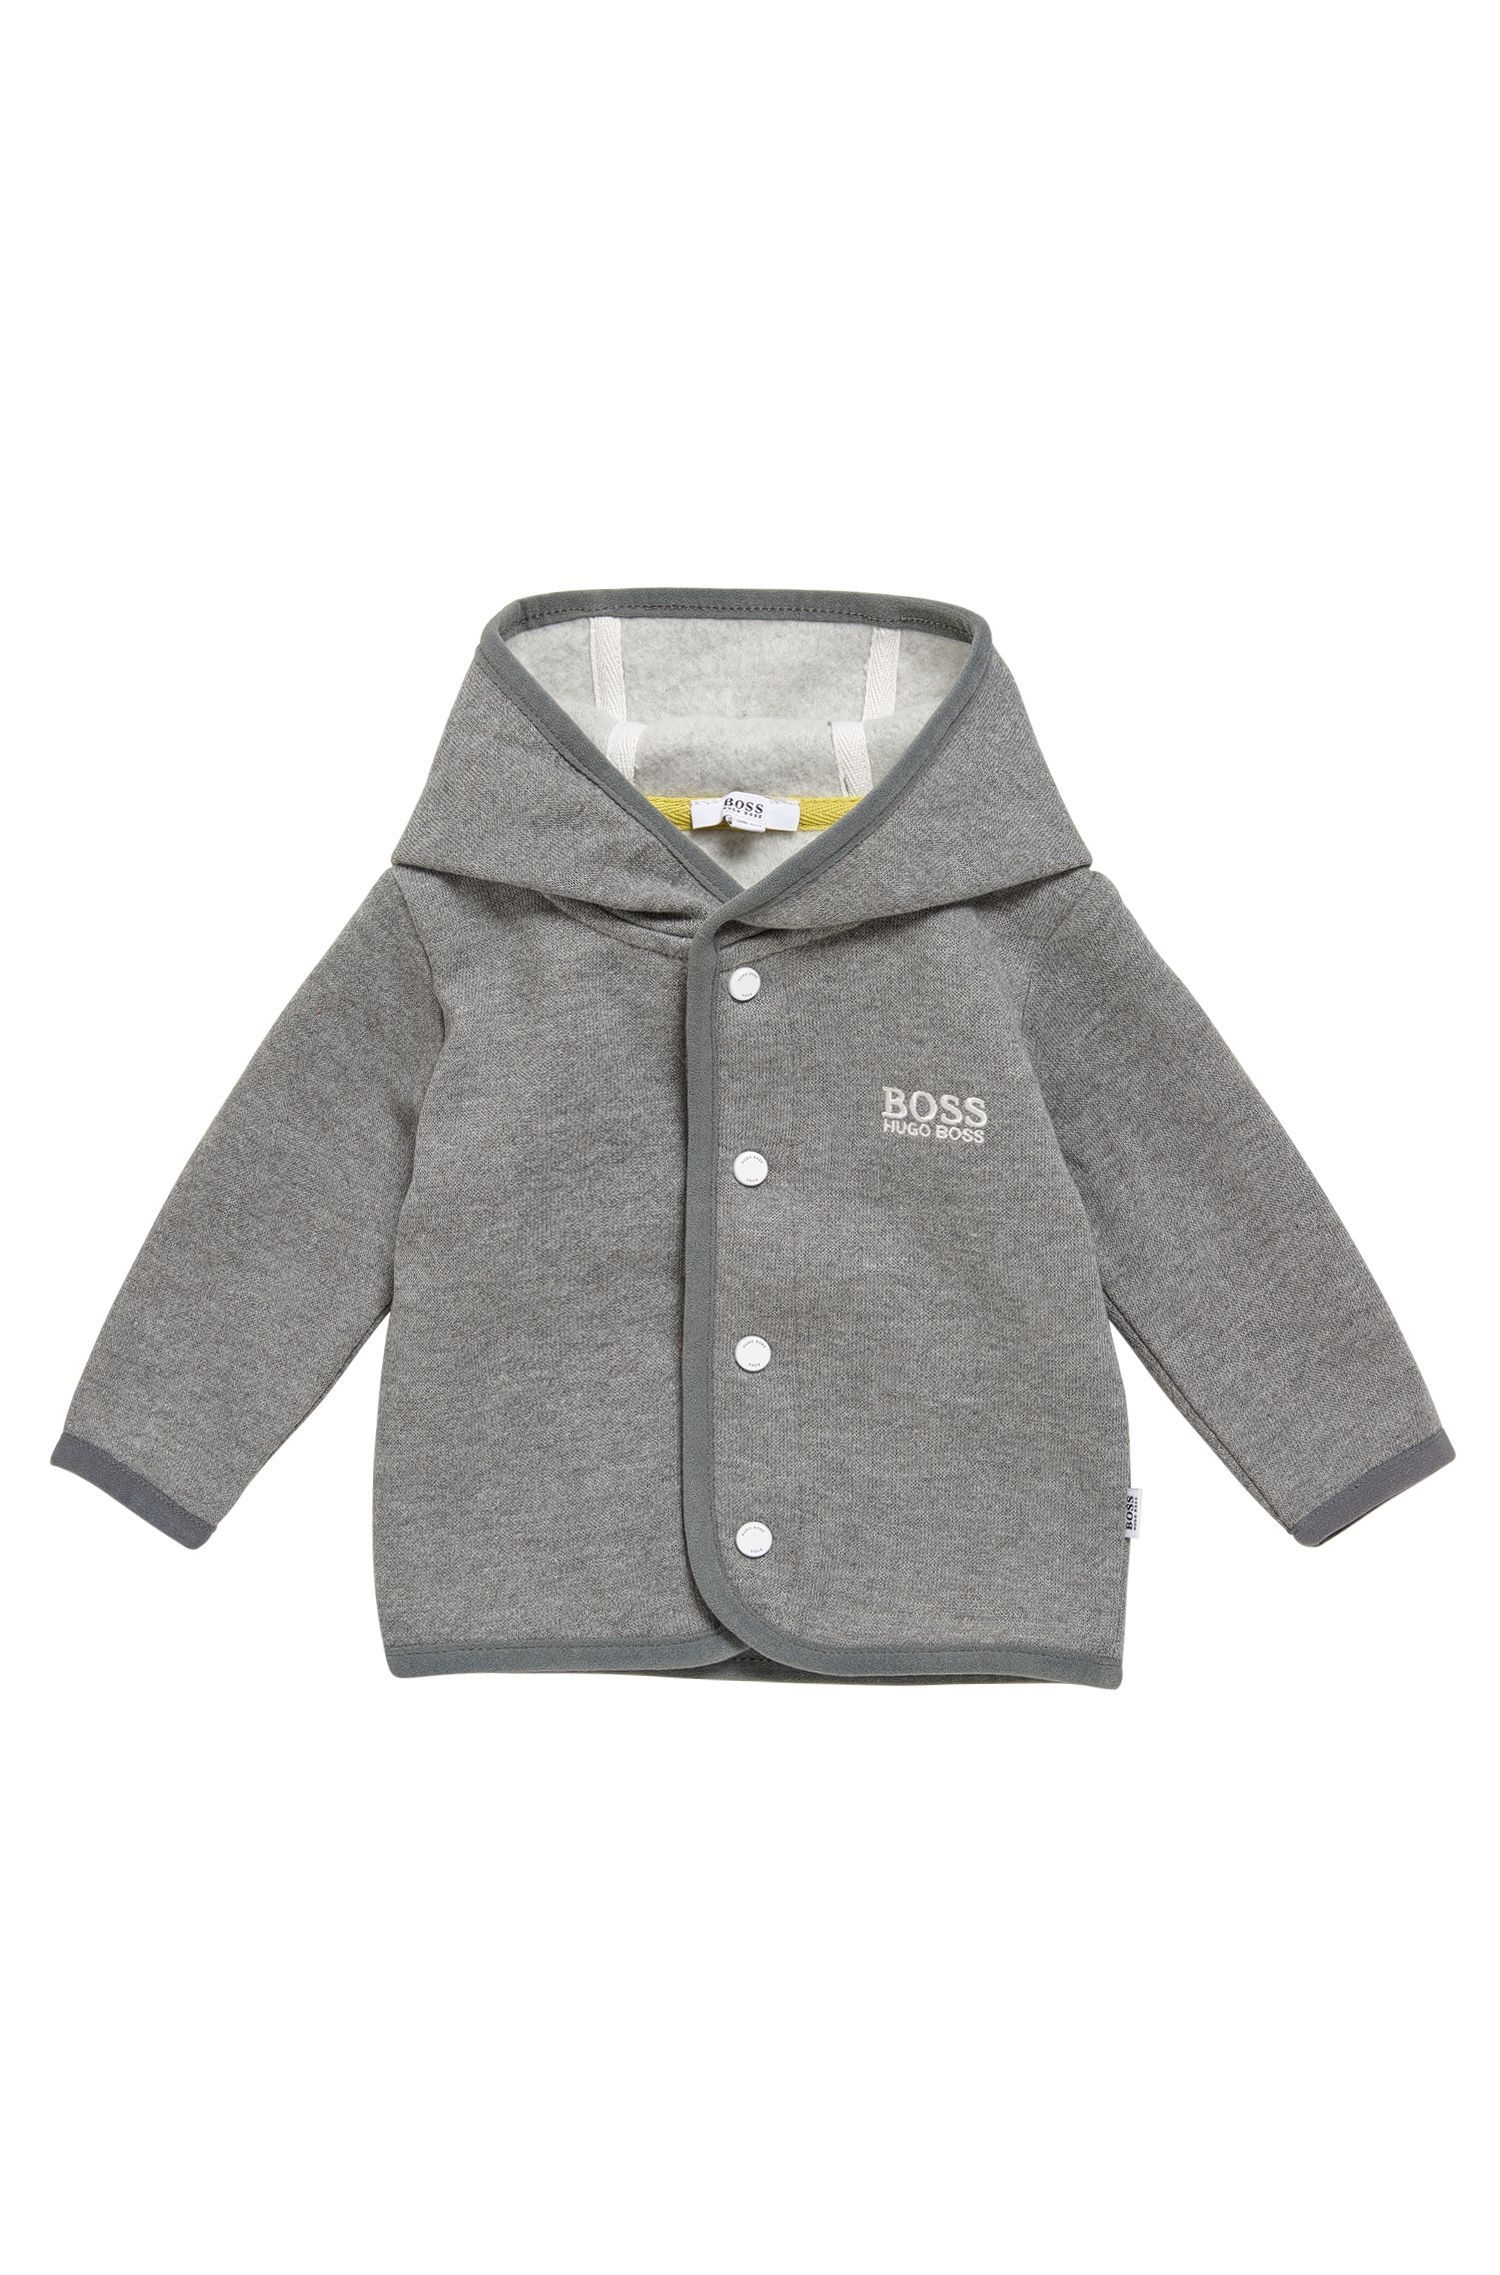 'J95212' | Stretch Cotton Hooded Sweatshirt Jacket